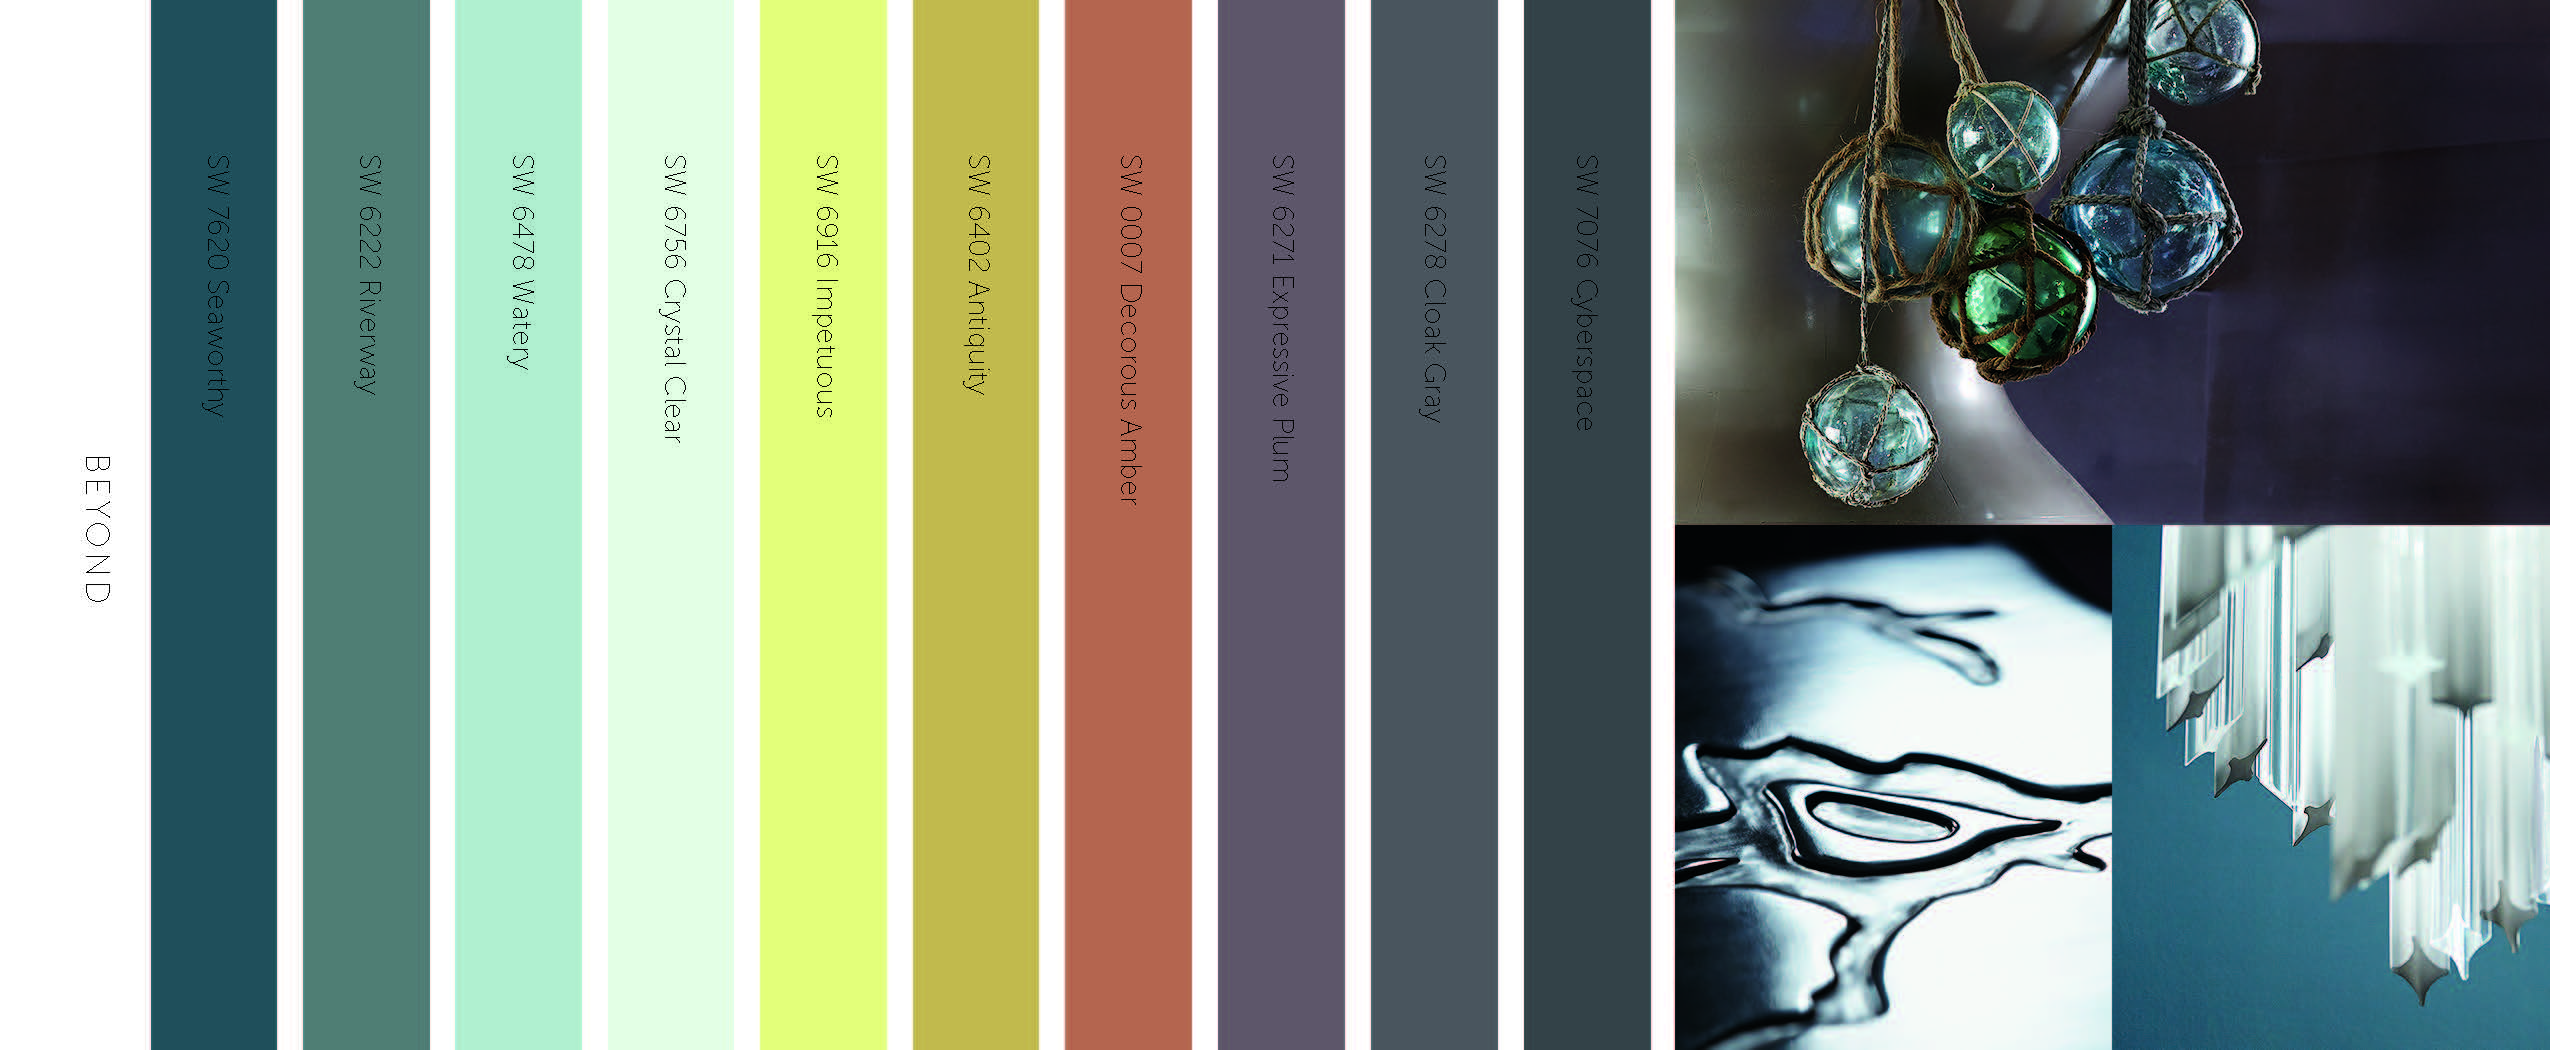 Sherwin Williams Voyage Palette Image